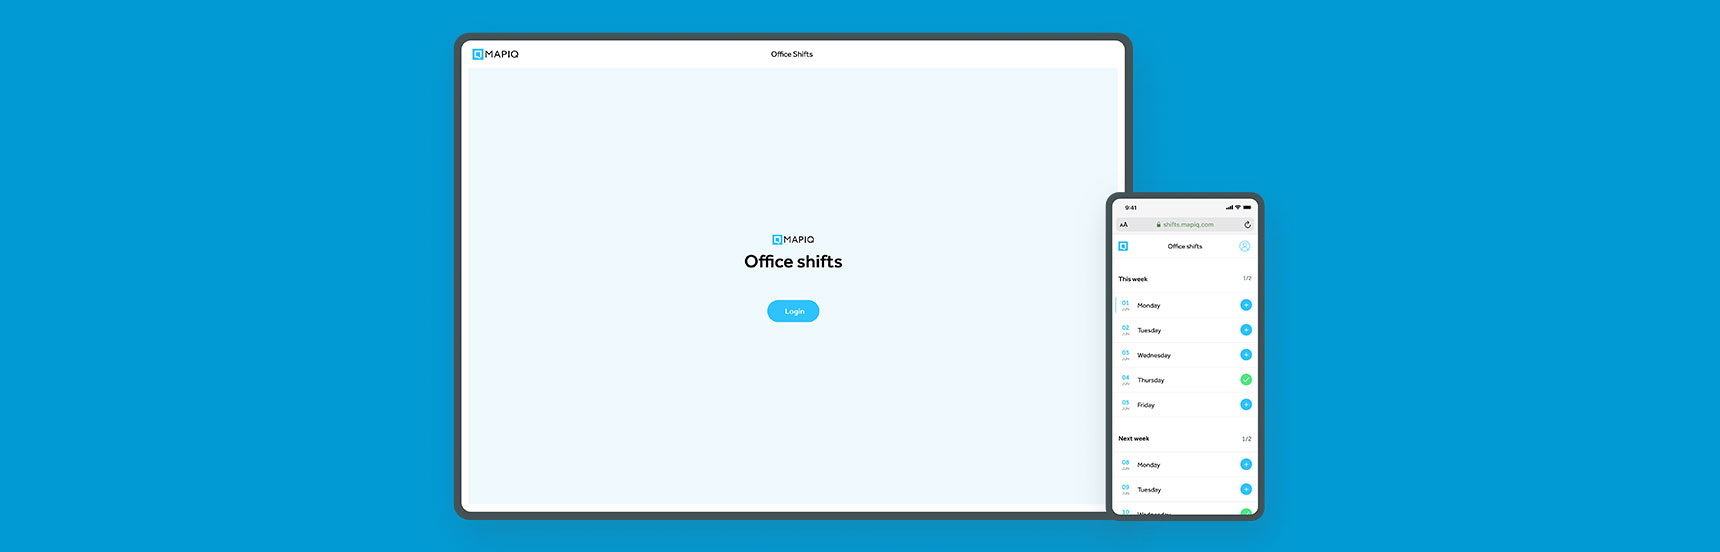 Wipro Lighting launches Mapiq's Office Shifts, a smart office technology in India